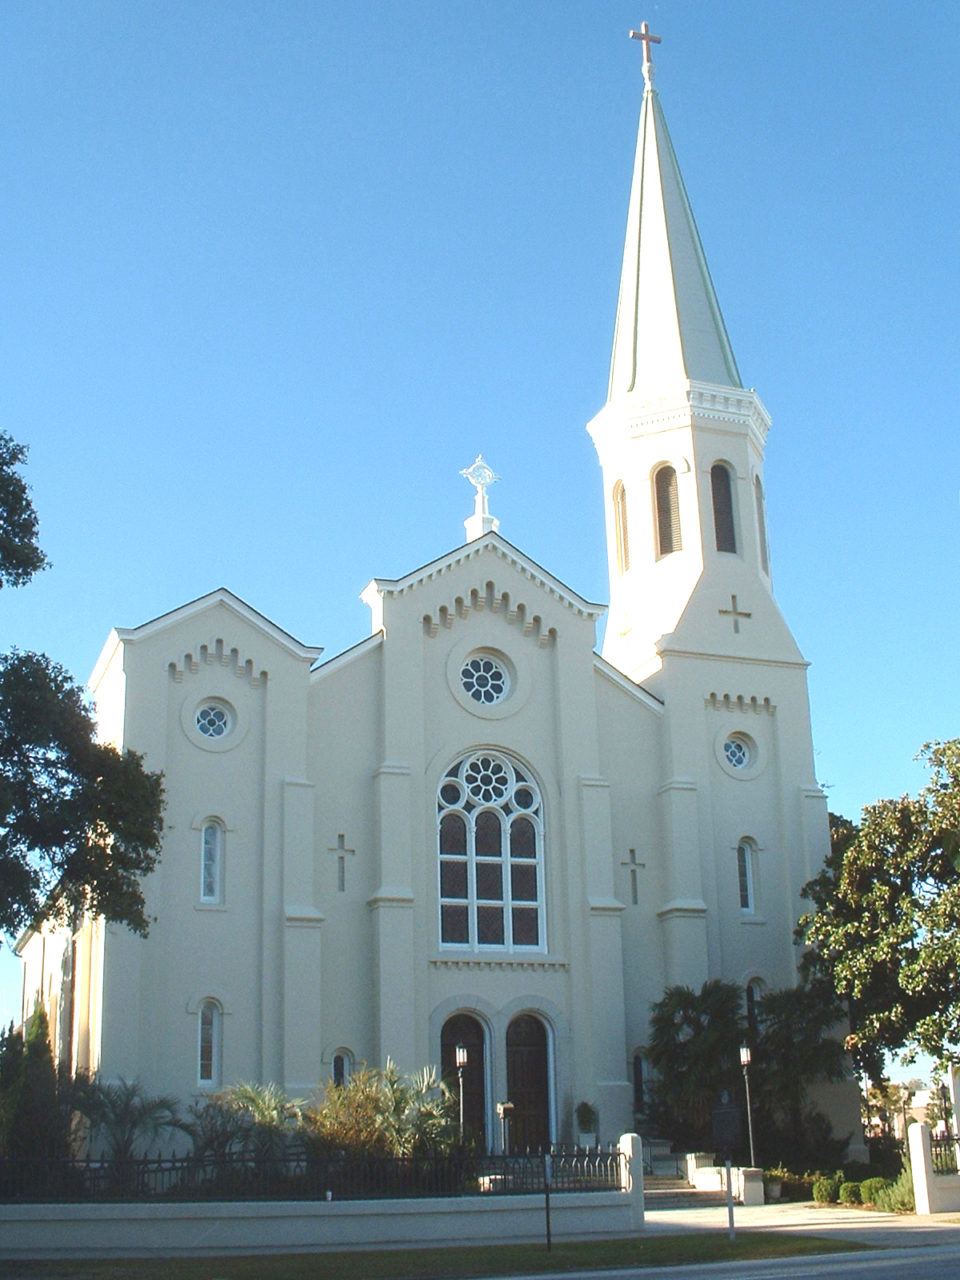 Civil Engineering Churches : Church of the most holy trinity jla group